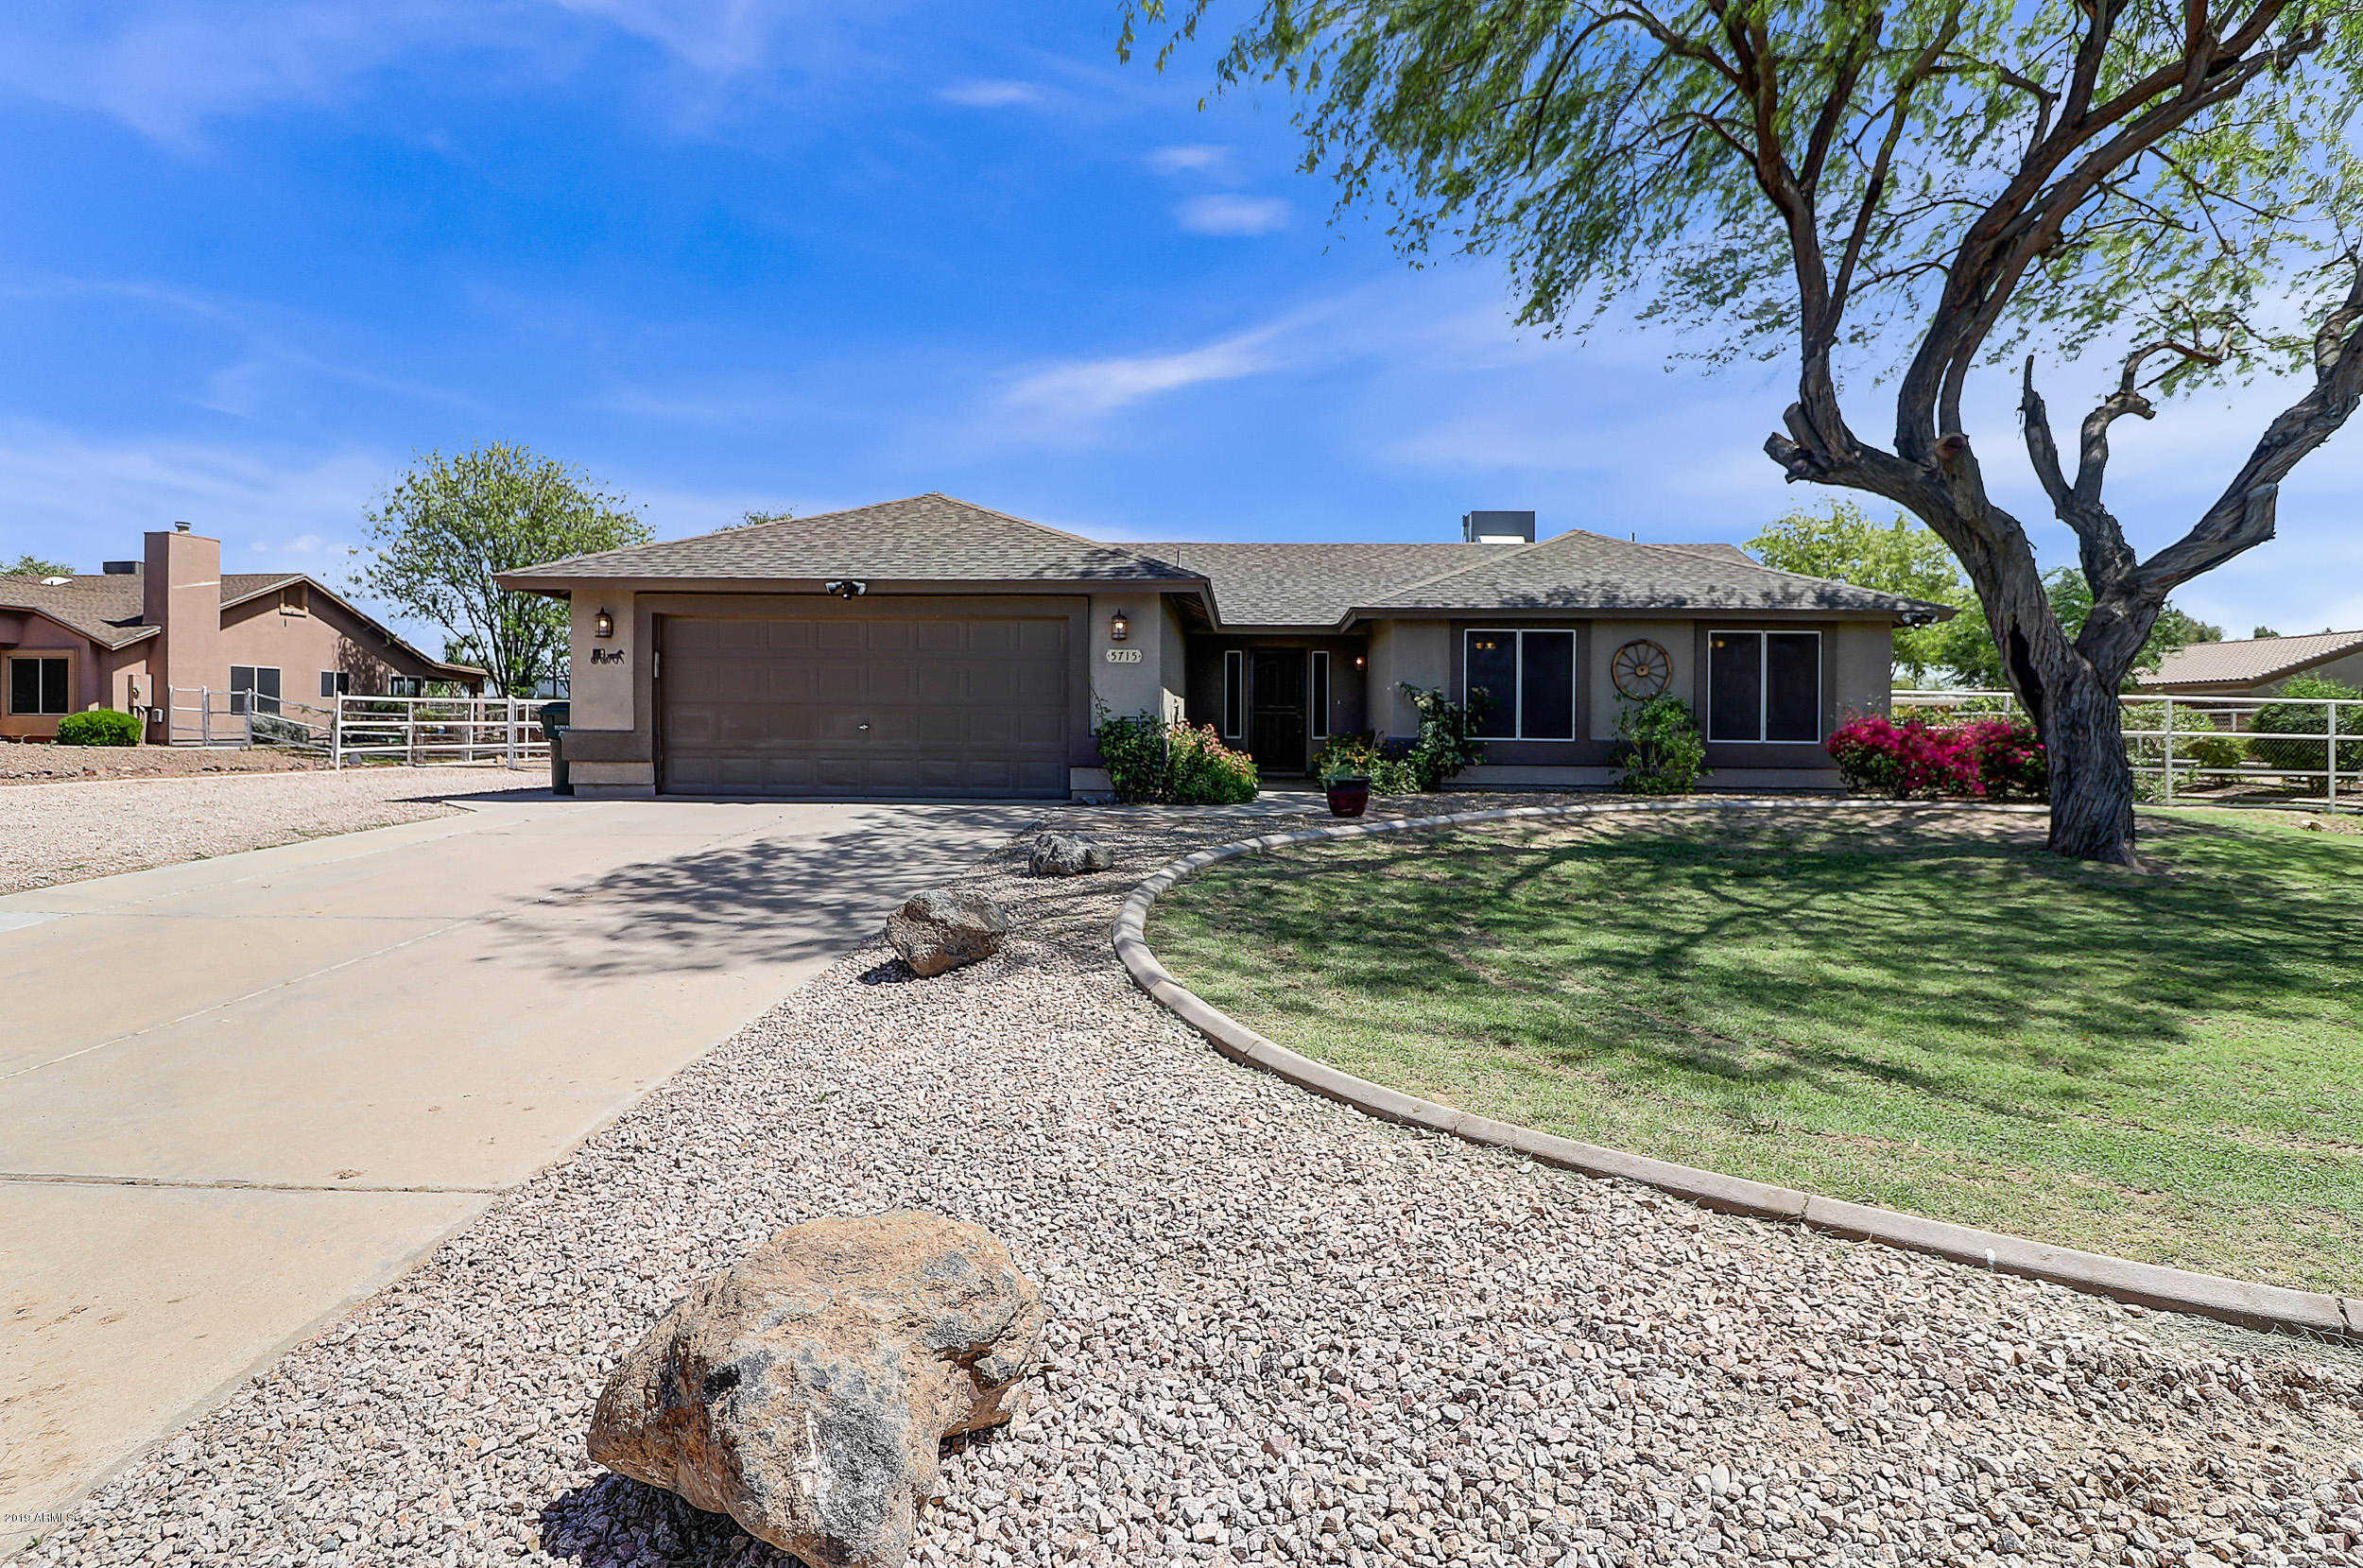 $395,000 - 3Br/2Ba - Home for Sale in Thoroughbred Farms, Glendale